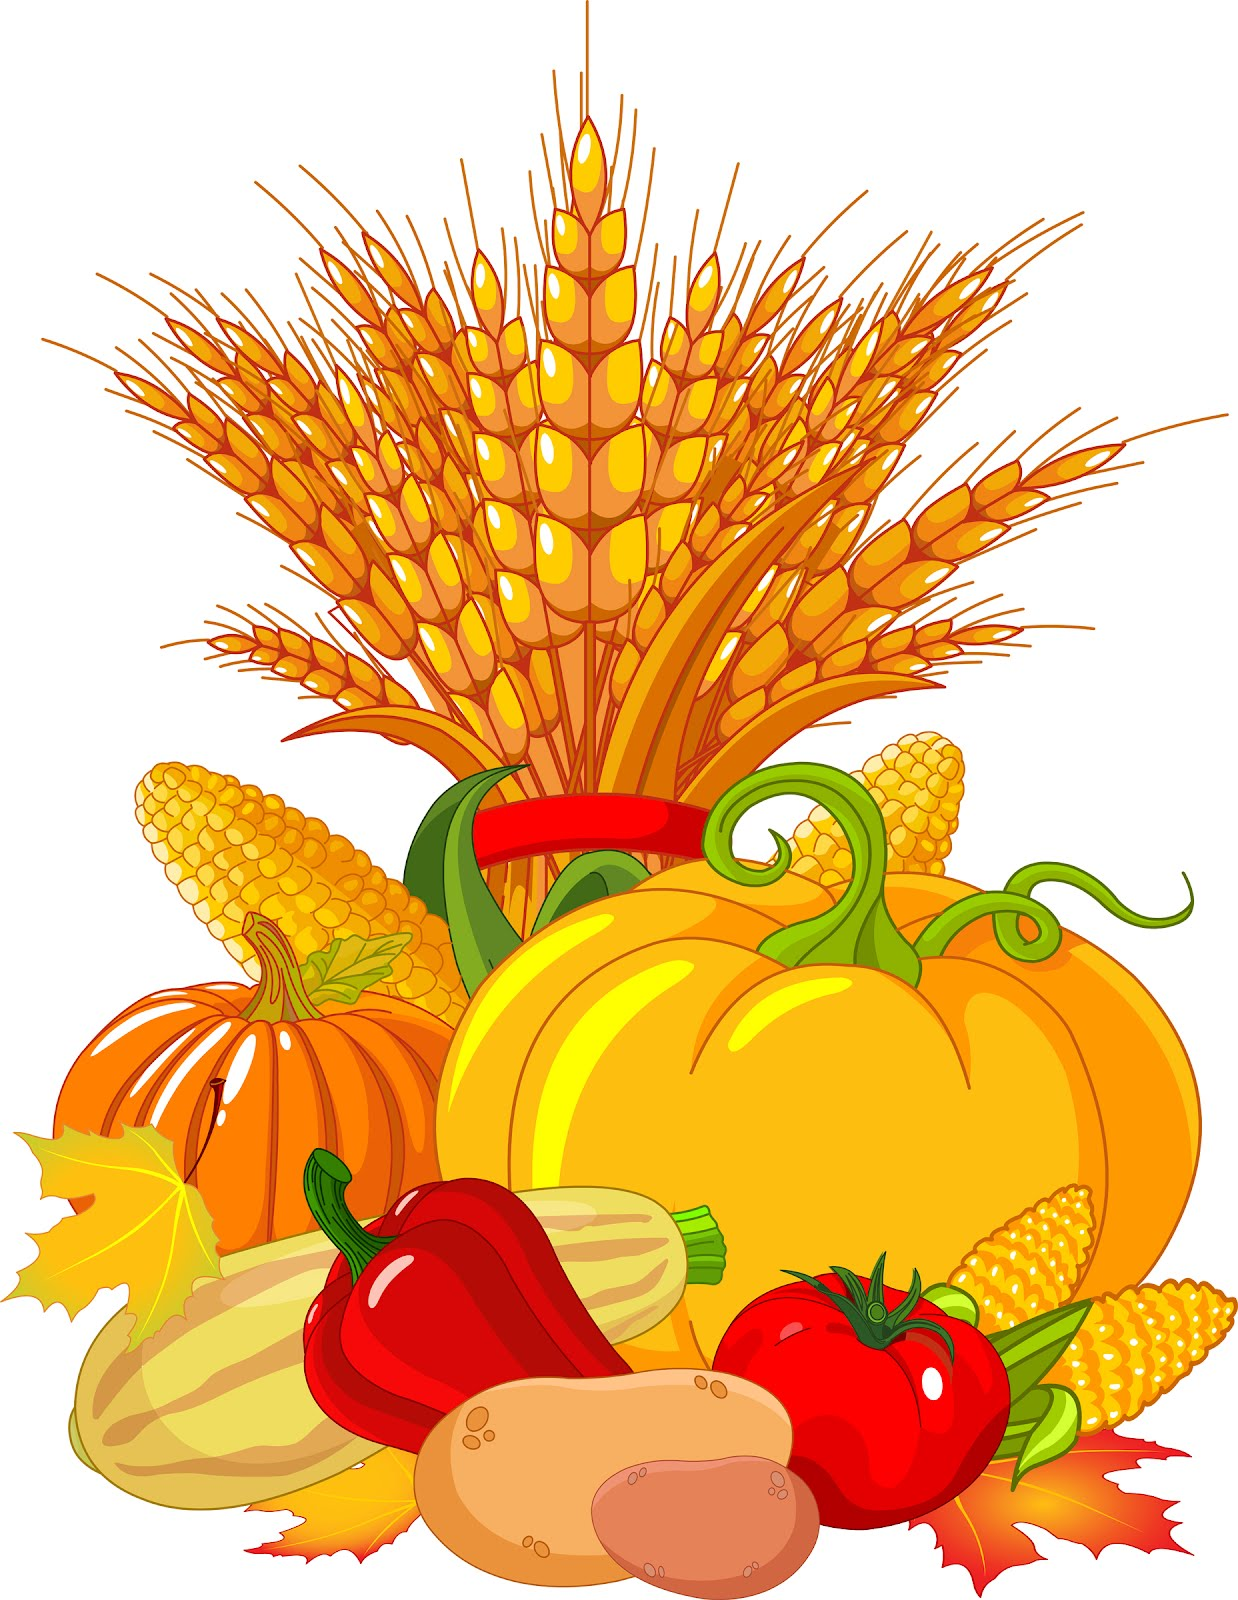 Christian fall festival clipart jpg royalty free stock Fall festival harvest church clipart 3 - WikiClipArt jpg royalty free stock